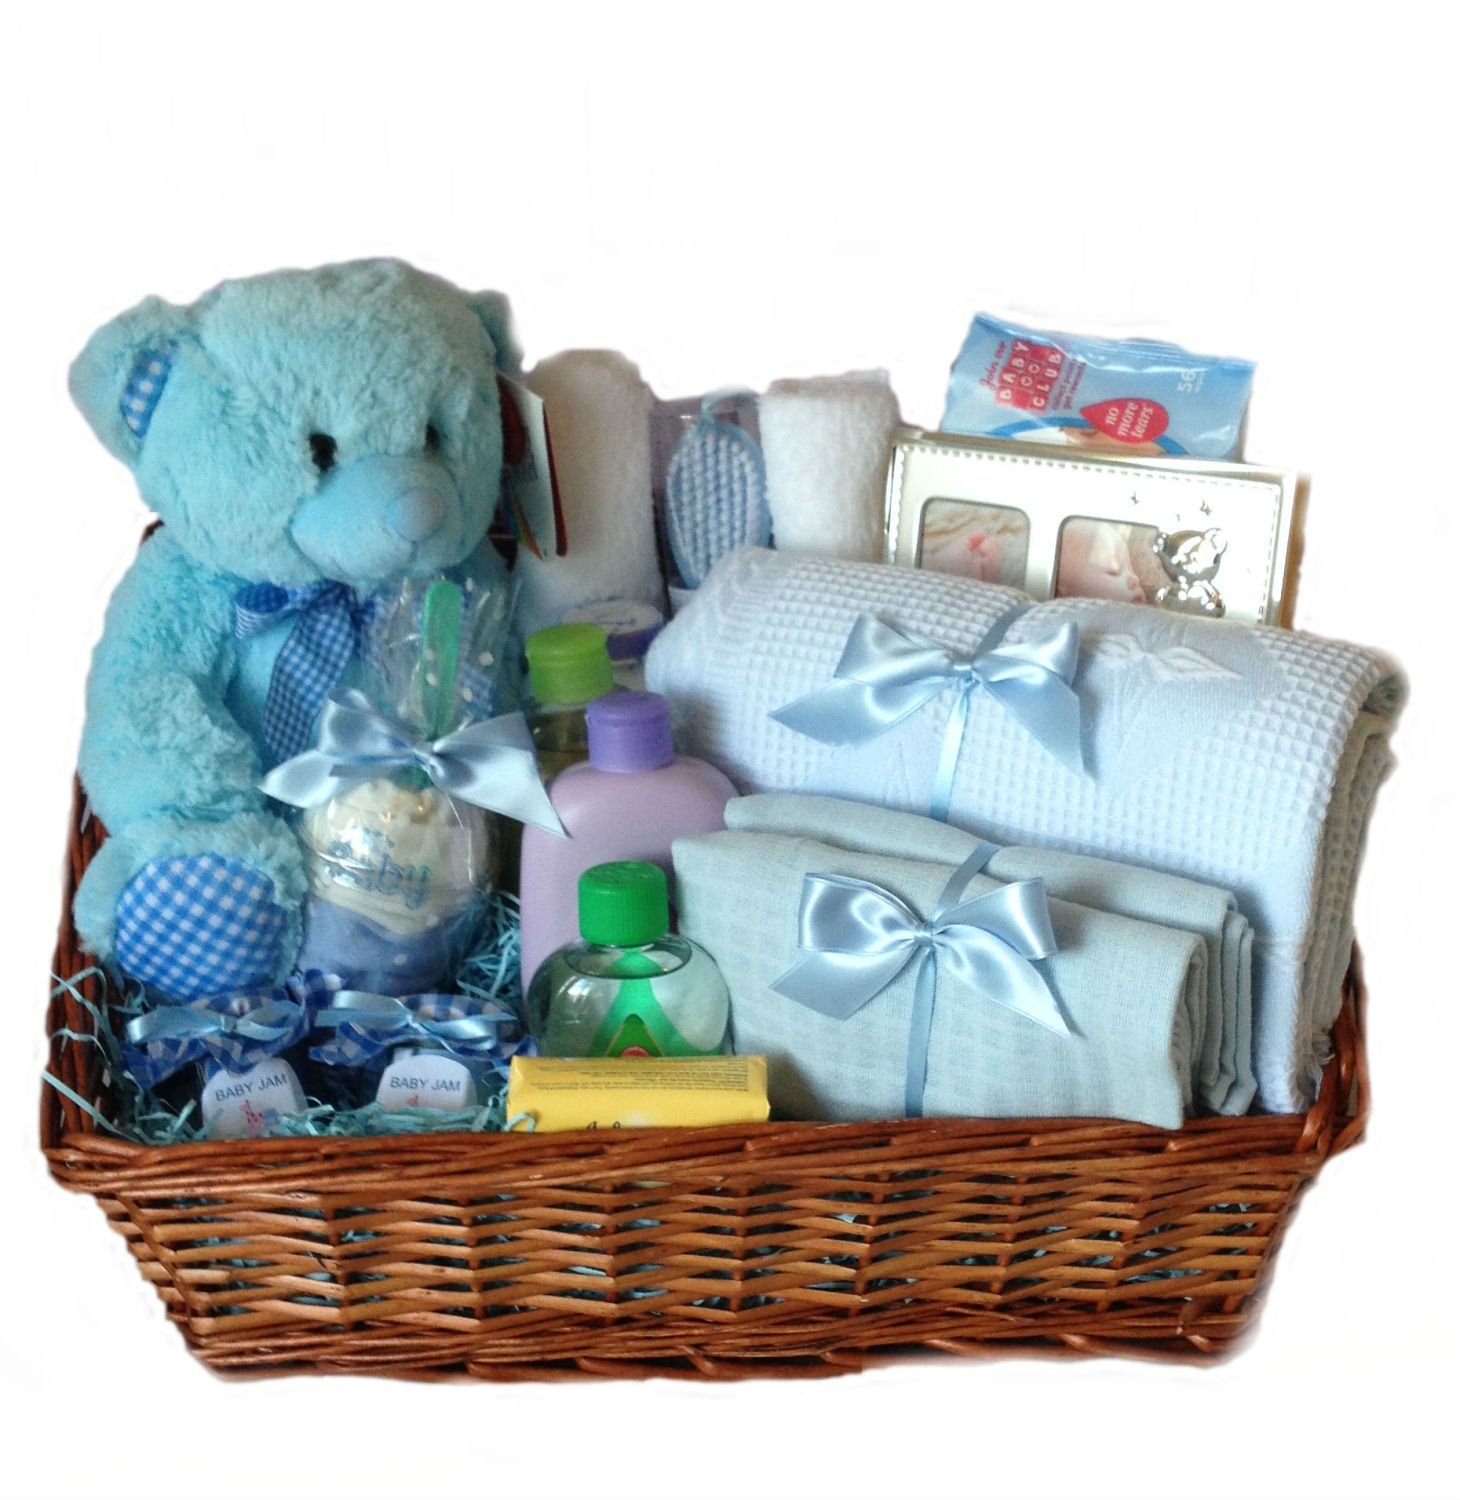 New Baby Boy Gifts For Delivery : Baby hamper new gift boy napy cake